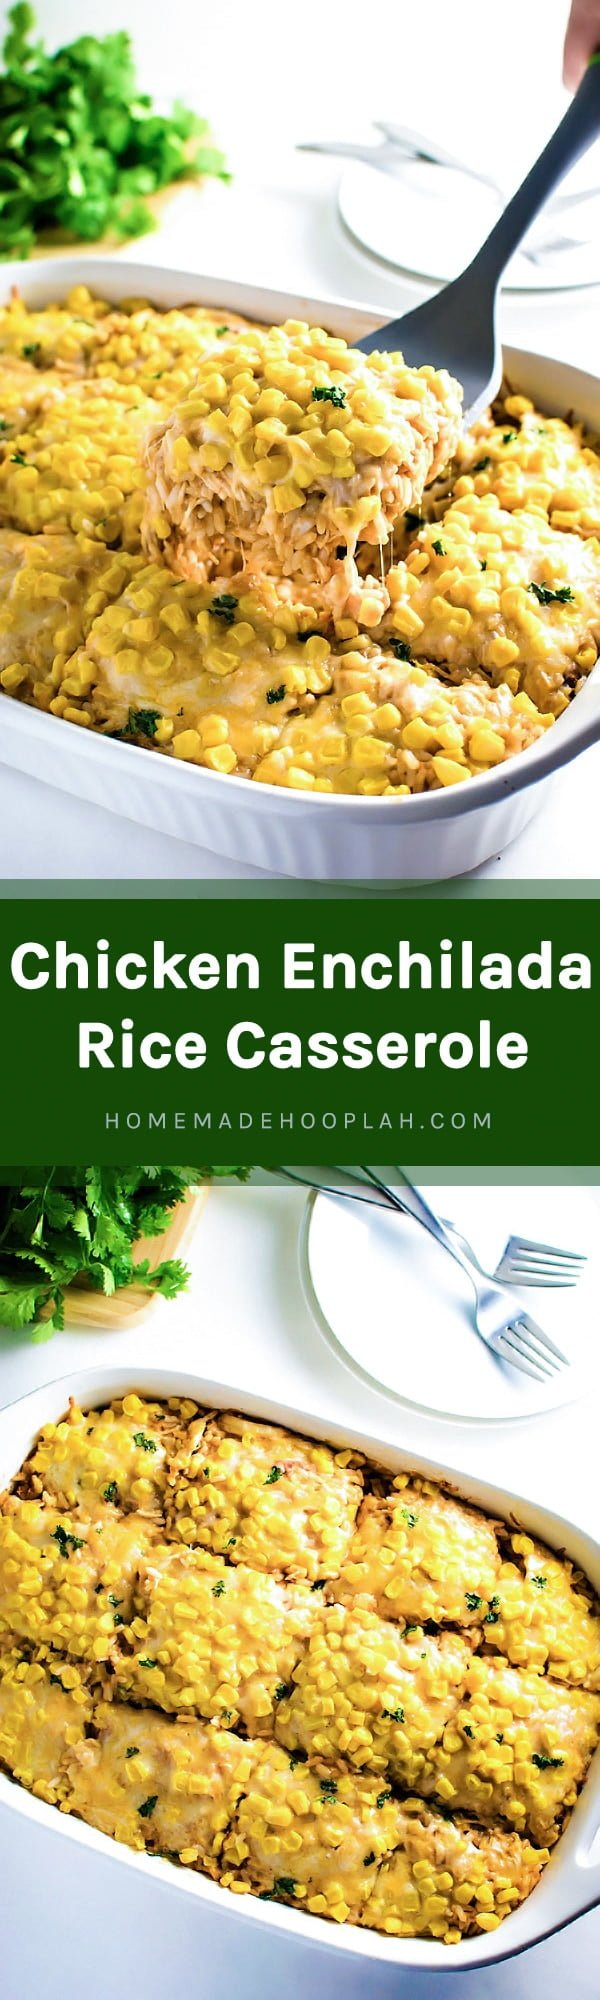 Chicken Enchilada Rice Casserole! The easier way to enjoy a chicken enchilada - baked in a dish with tender rice! | HomemadeHooplah.com